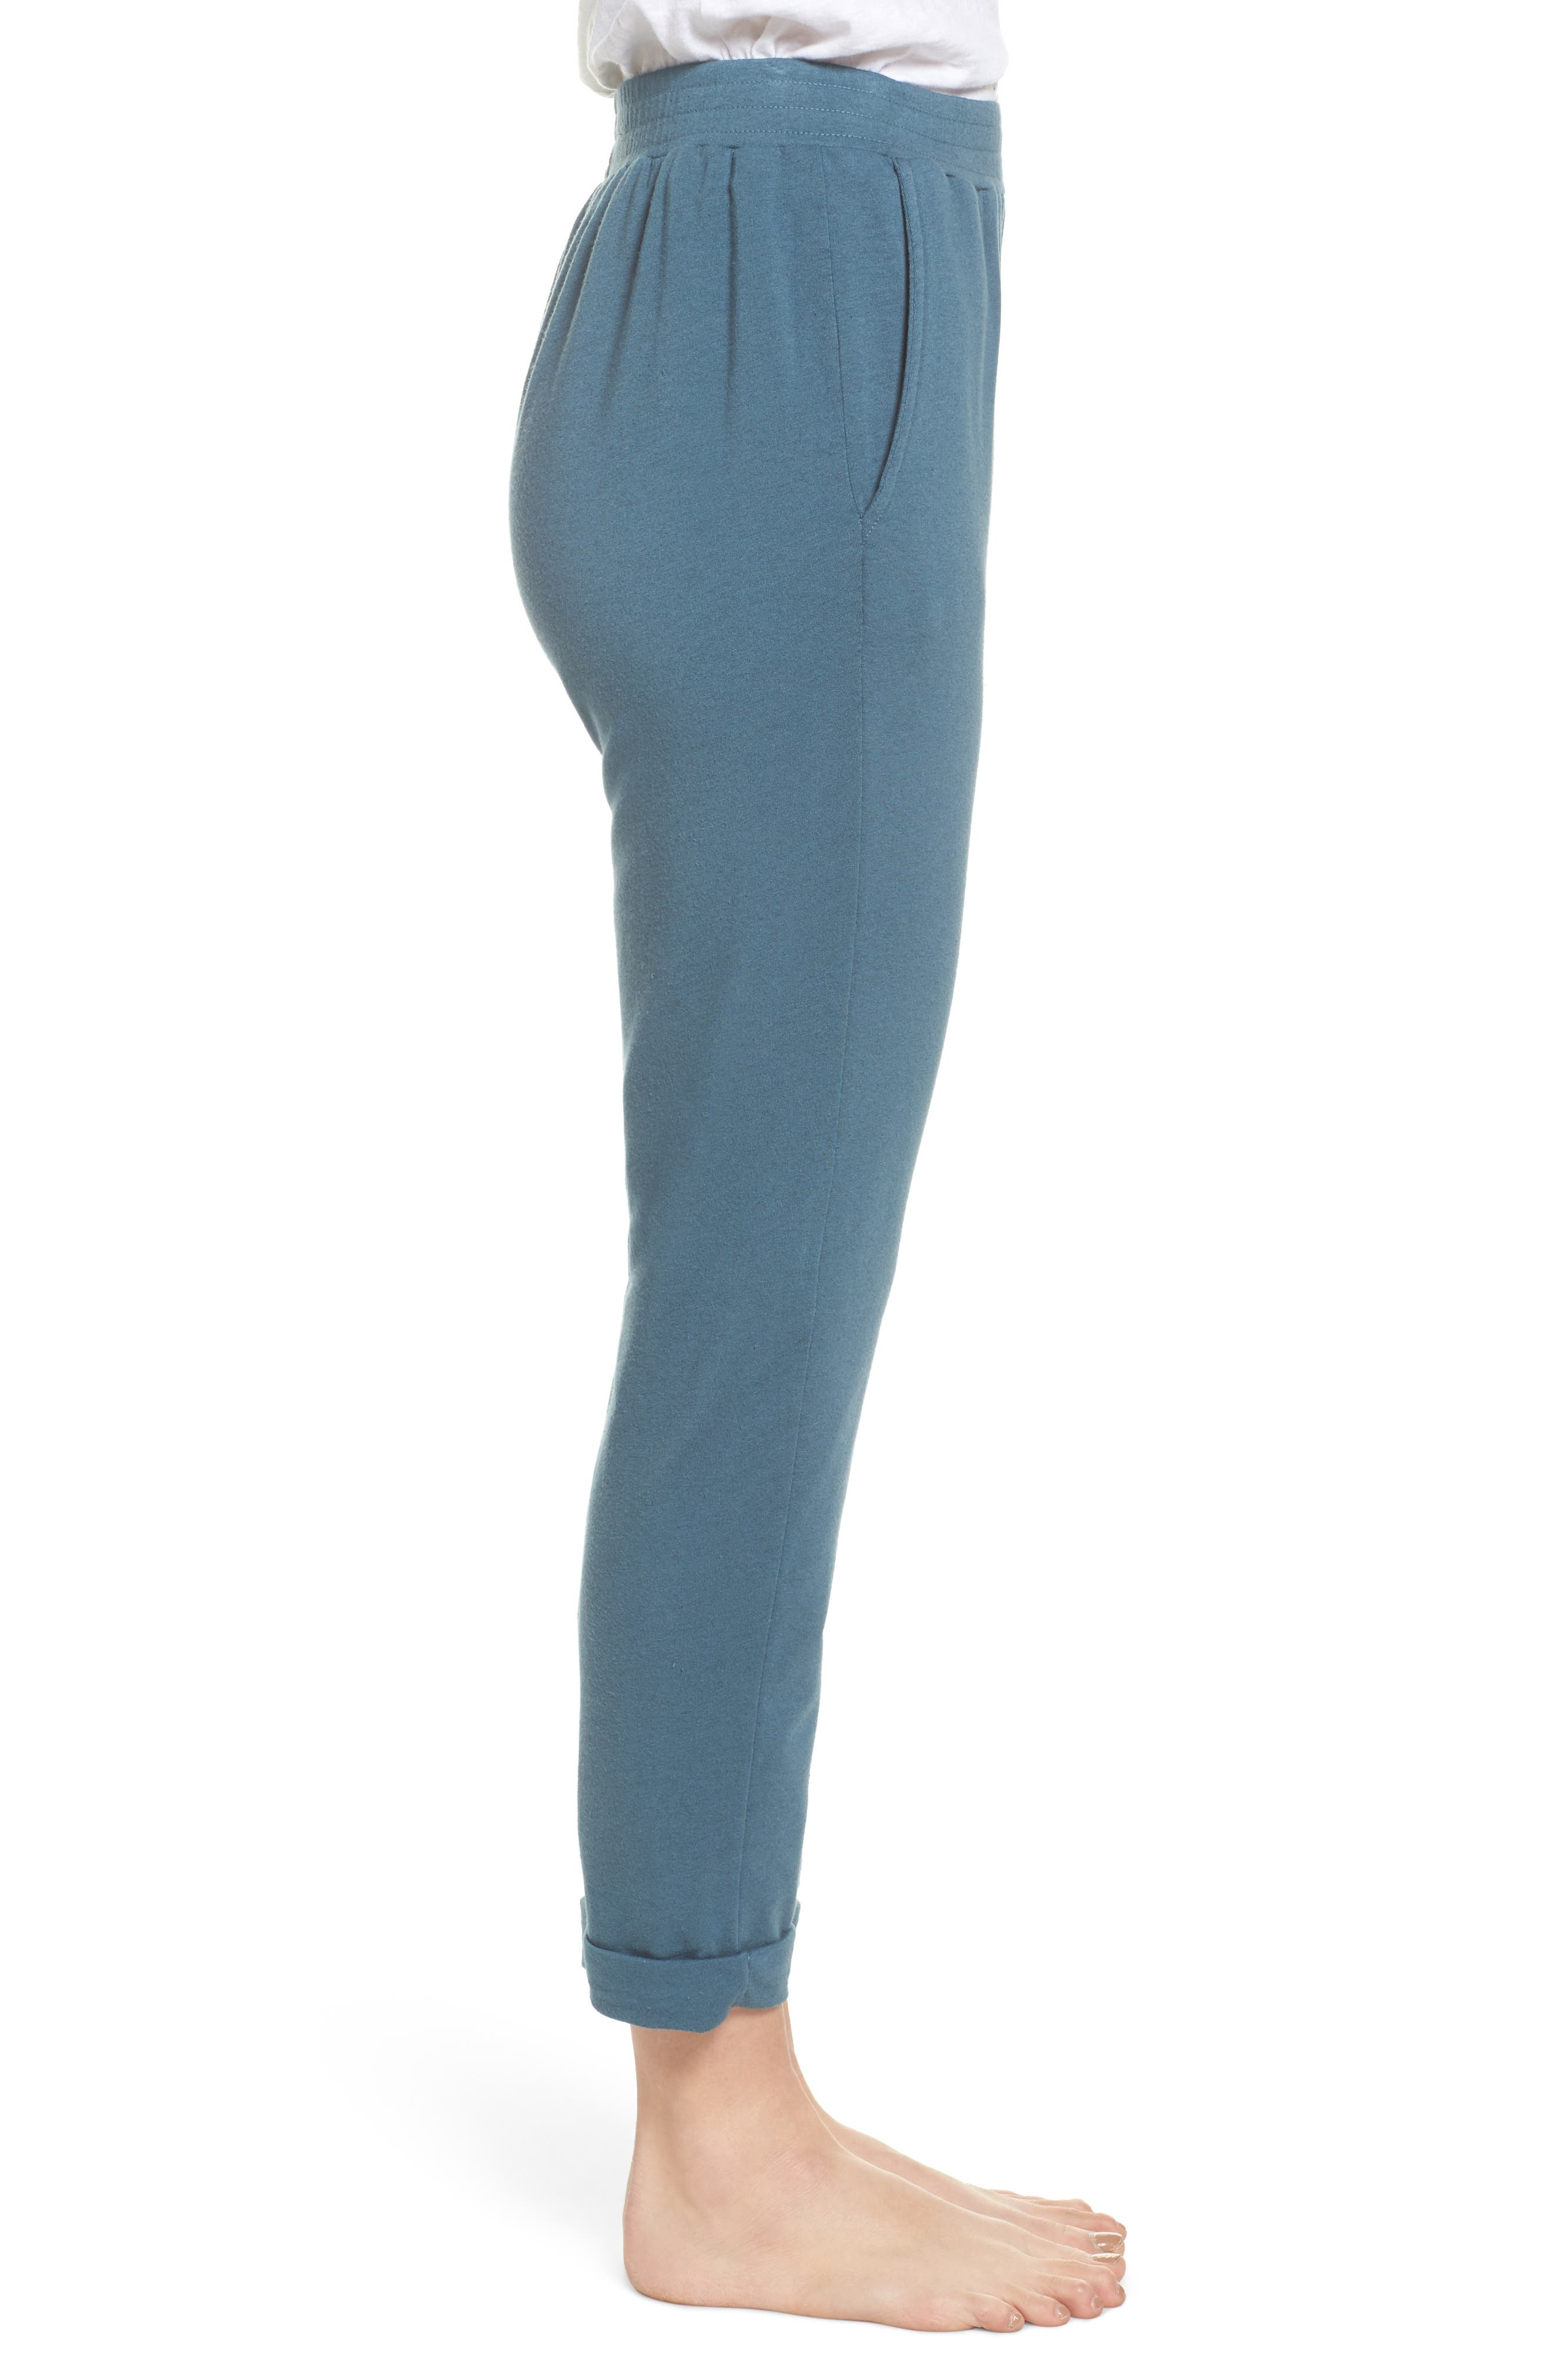 French Terry Sweatpants,                             Alternate thumbnail 3, color,                             Royal Teal